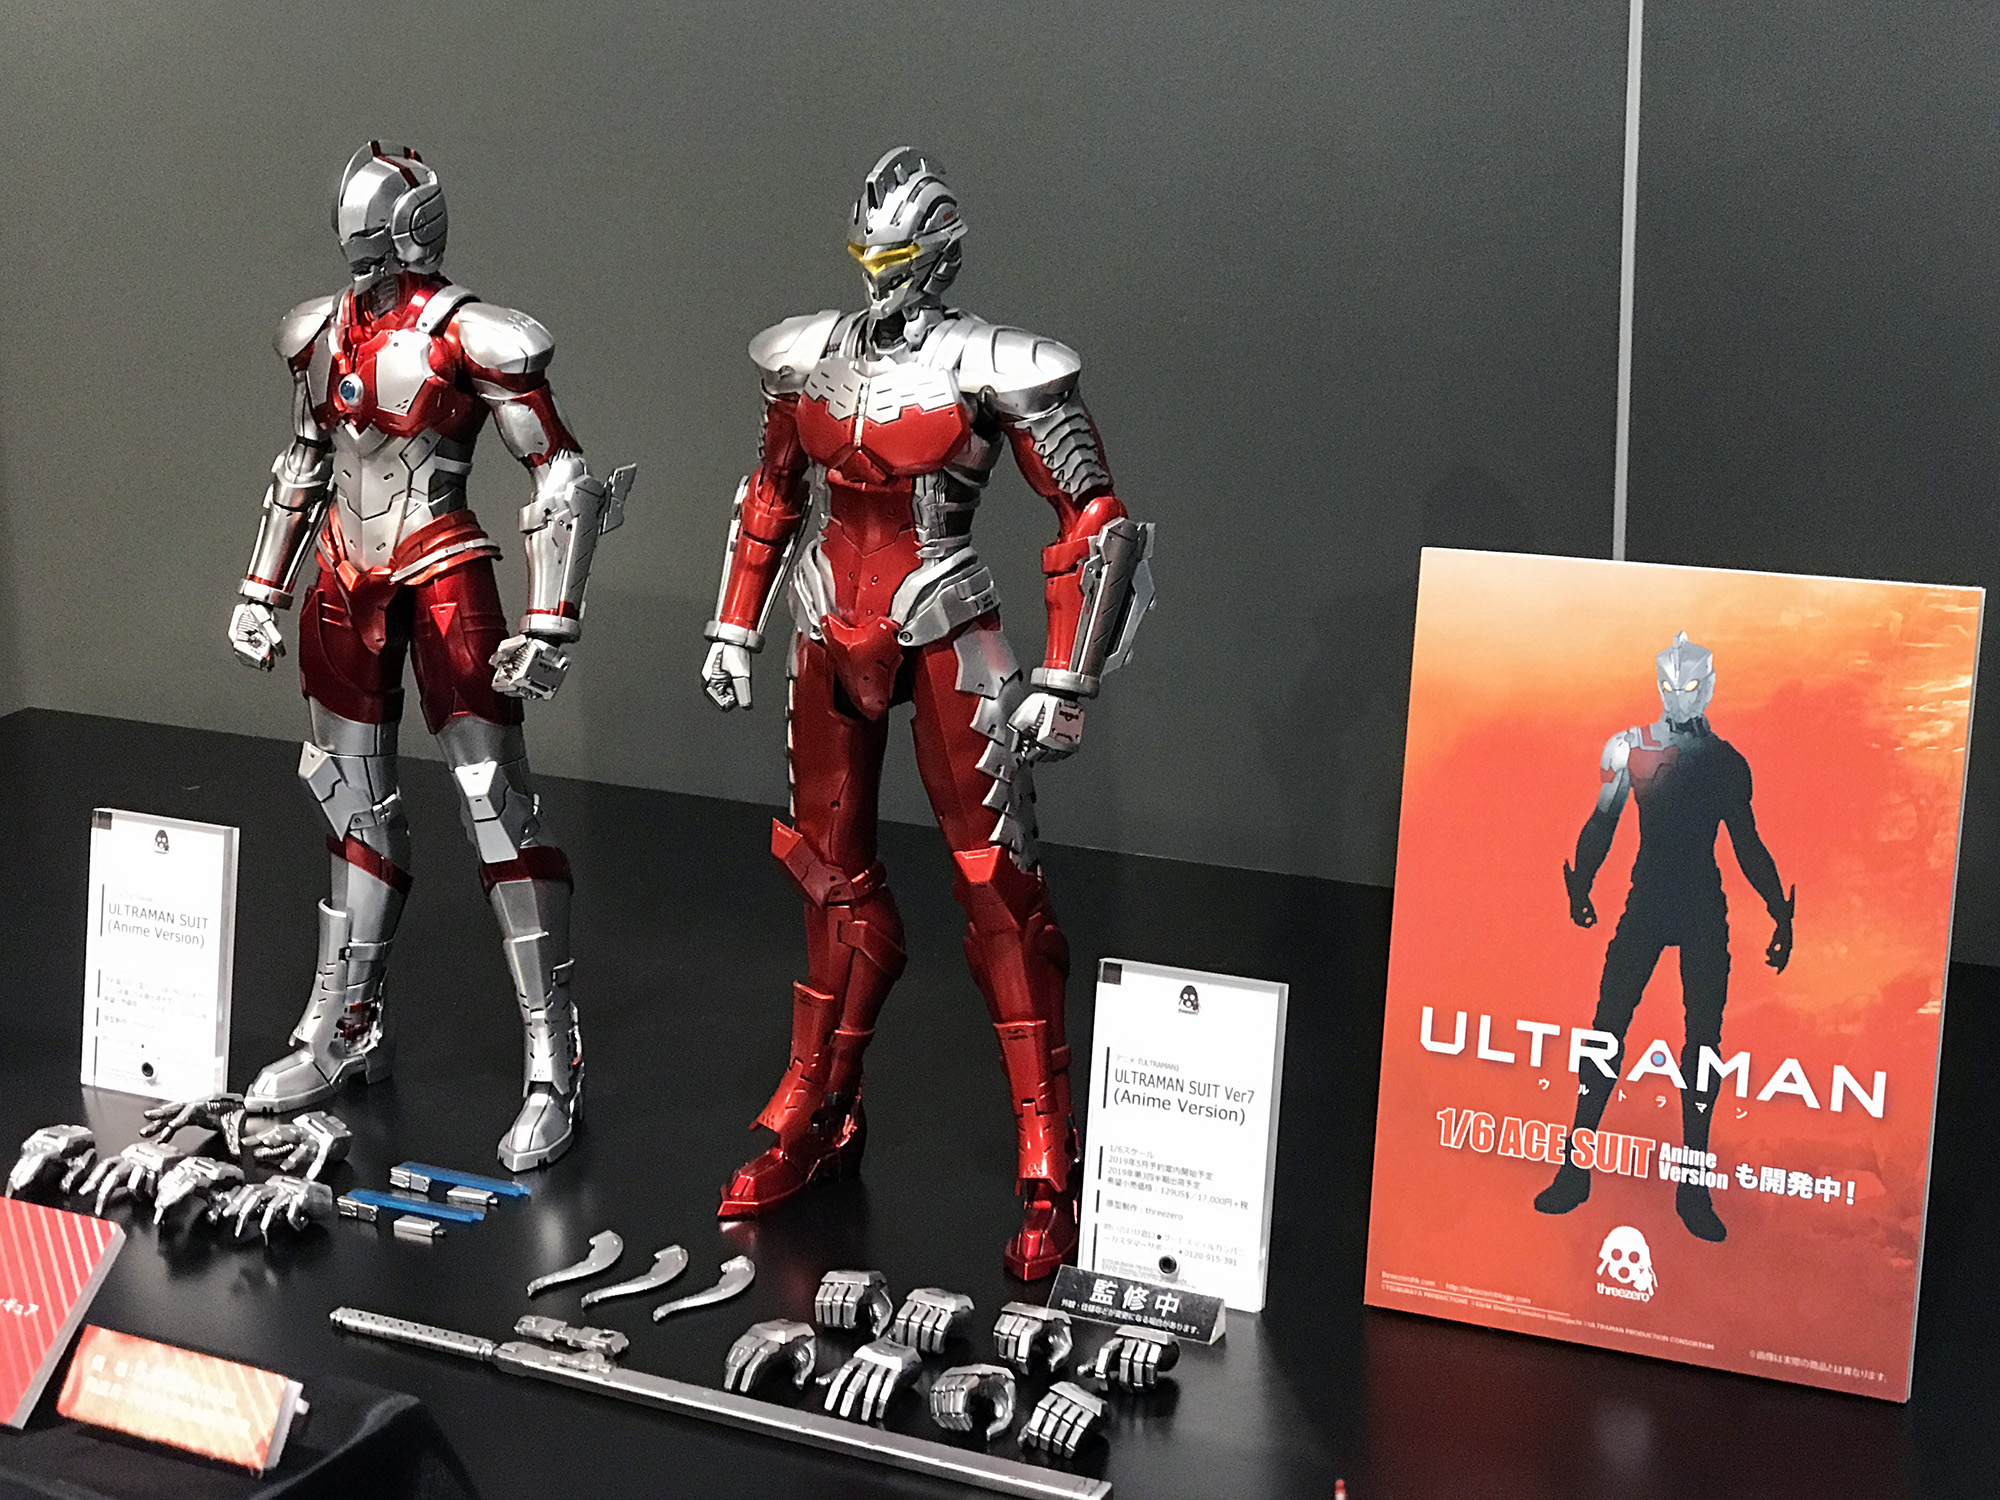 ultramanexhibit_06.jpg